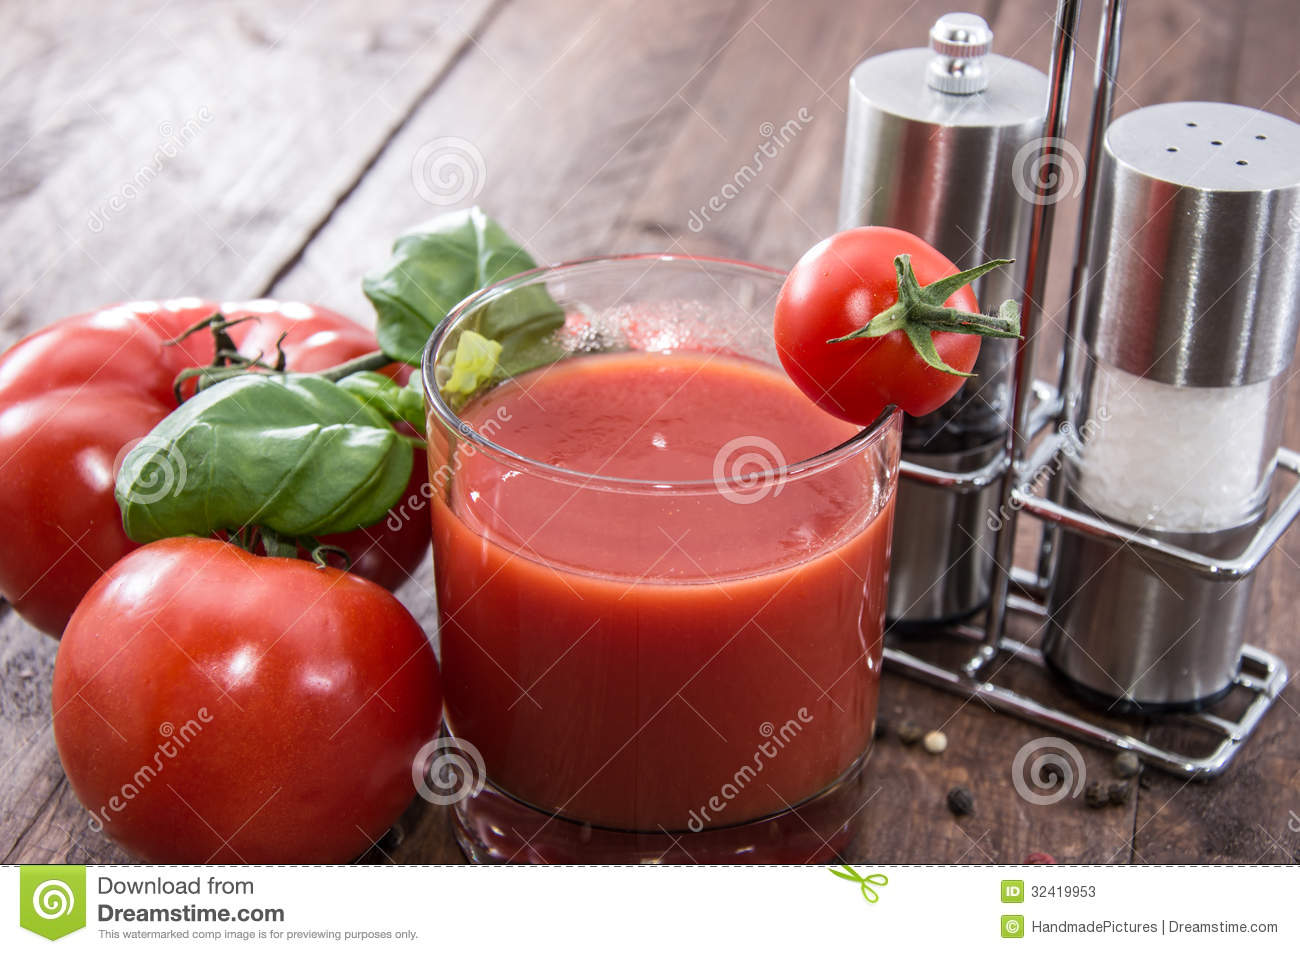 Homemade Tomato Juice Stock Photos - Image: 32419953